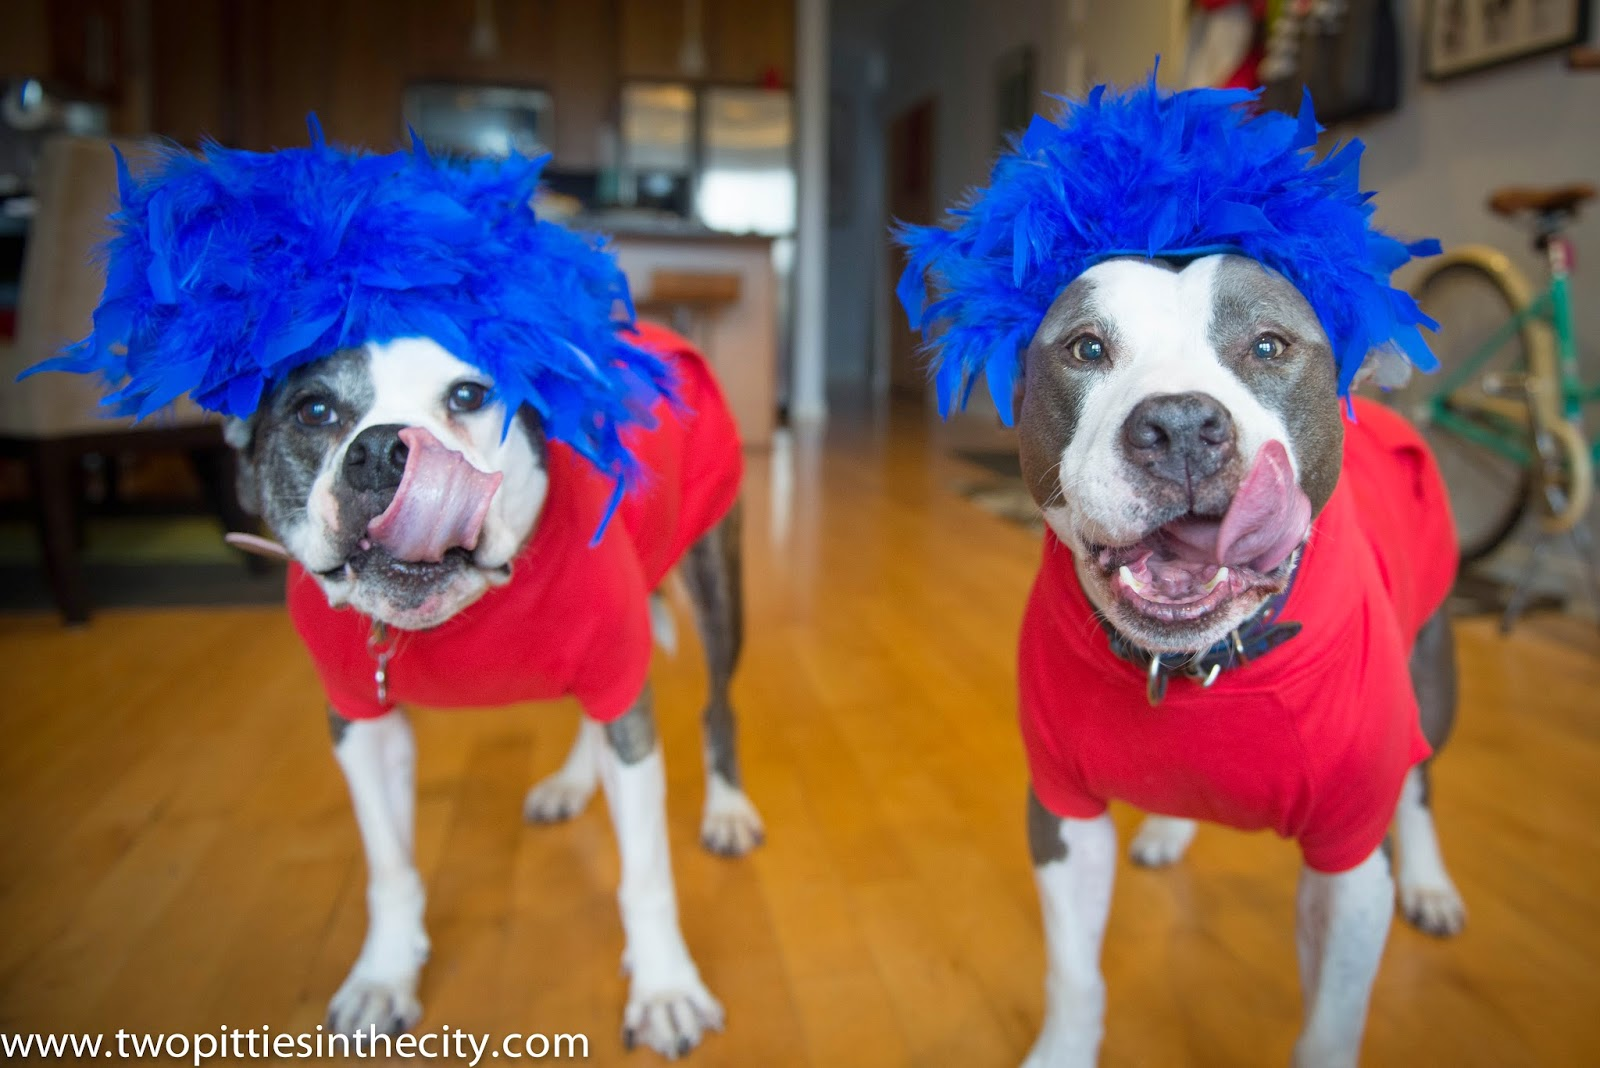 Two Pitties in the City: DoggyStyle: On Last Minute Dog ...